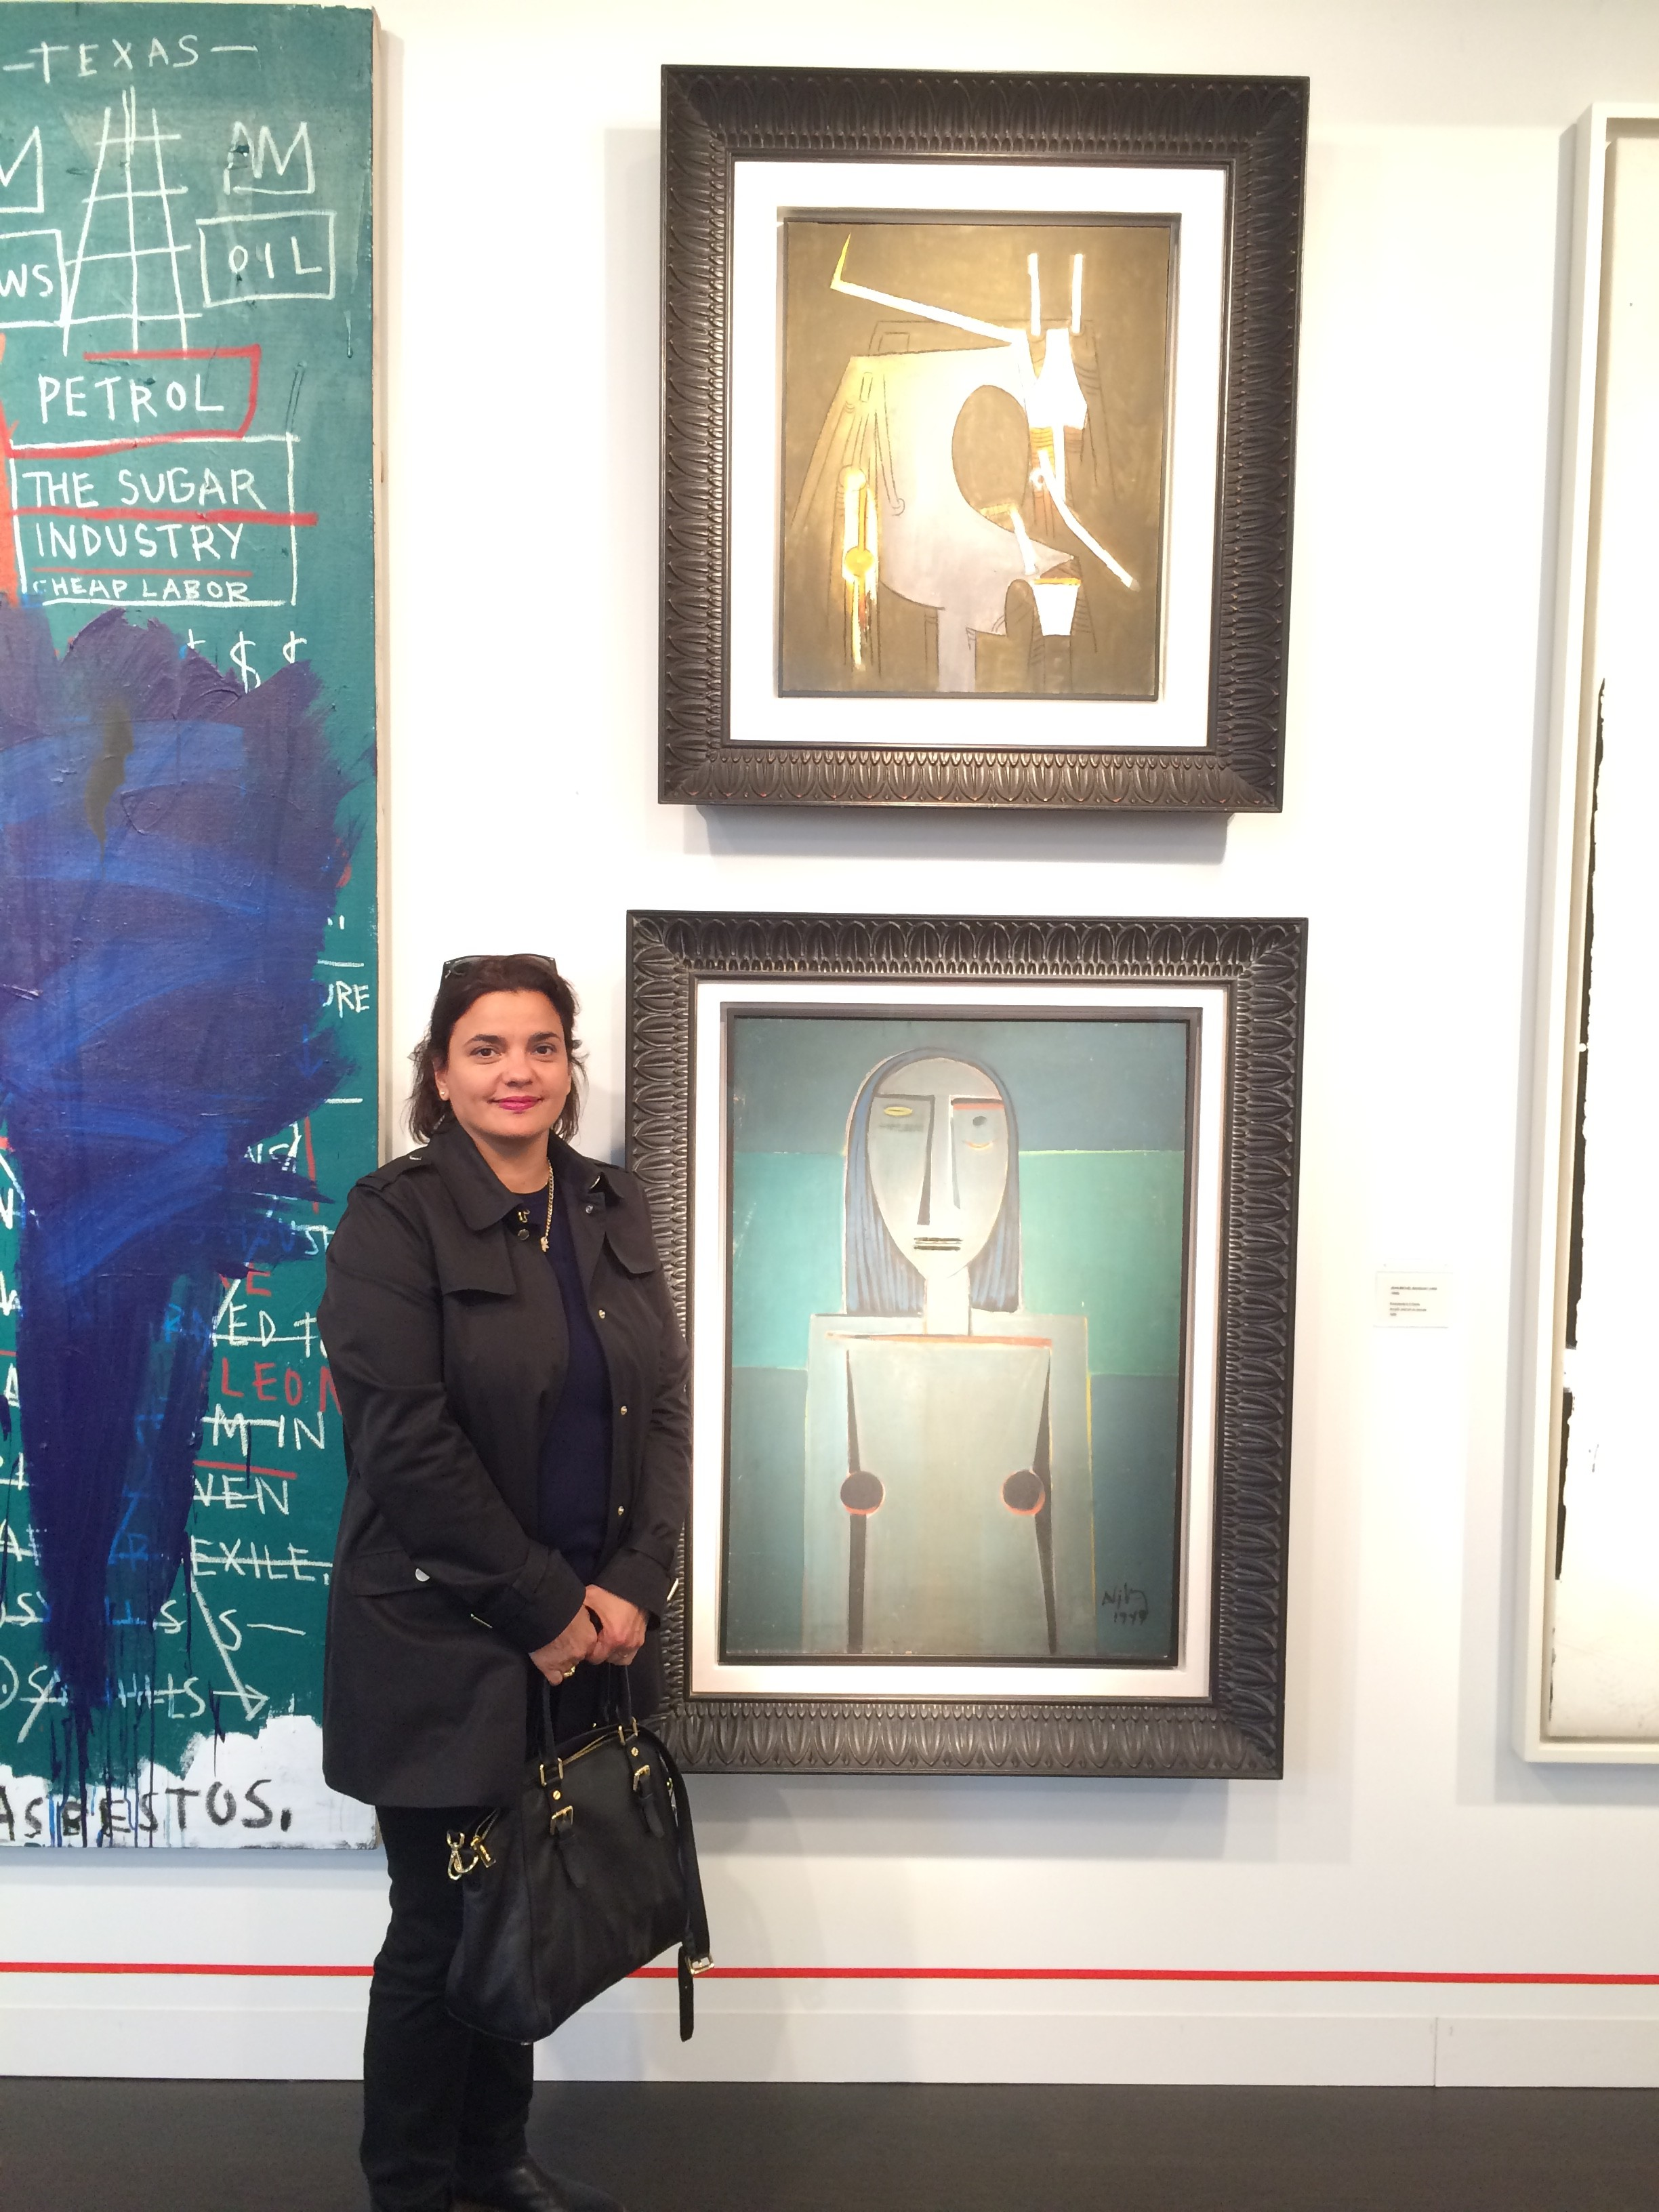 Wifredo Lamm exhibited at Art Basel 2015